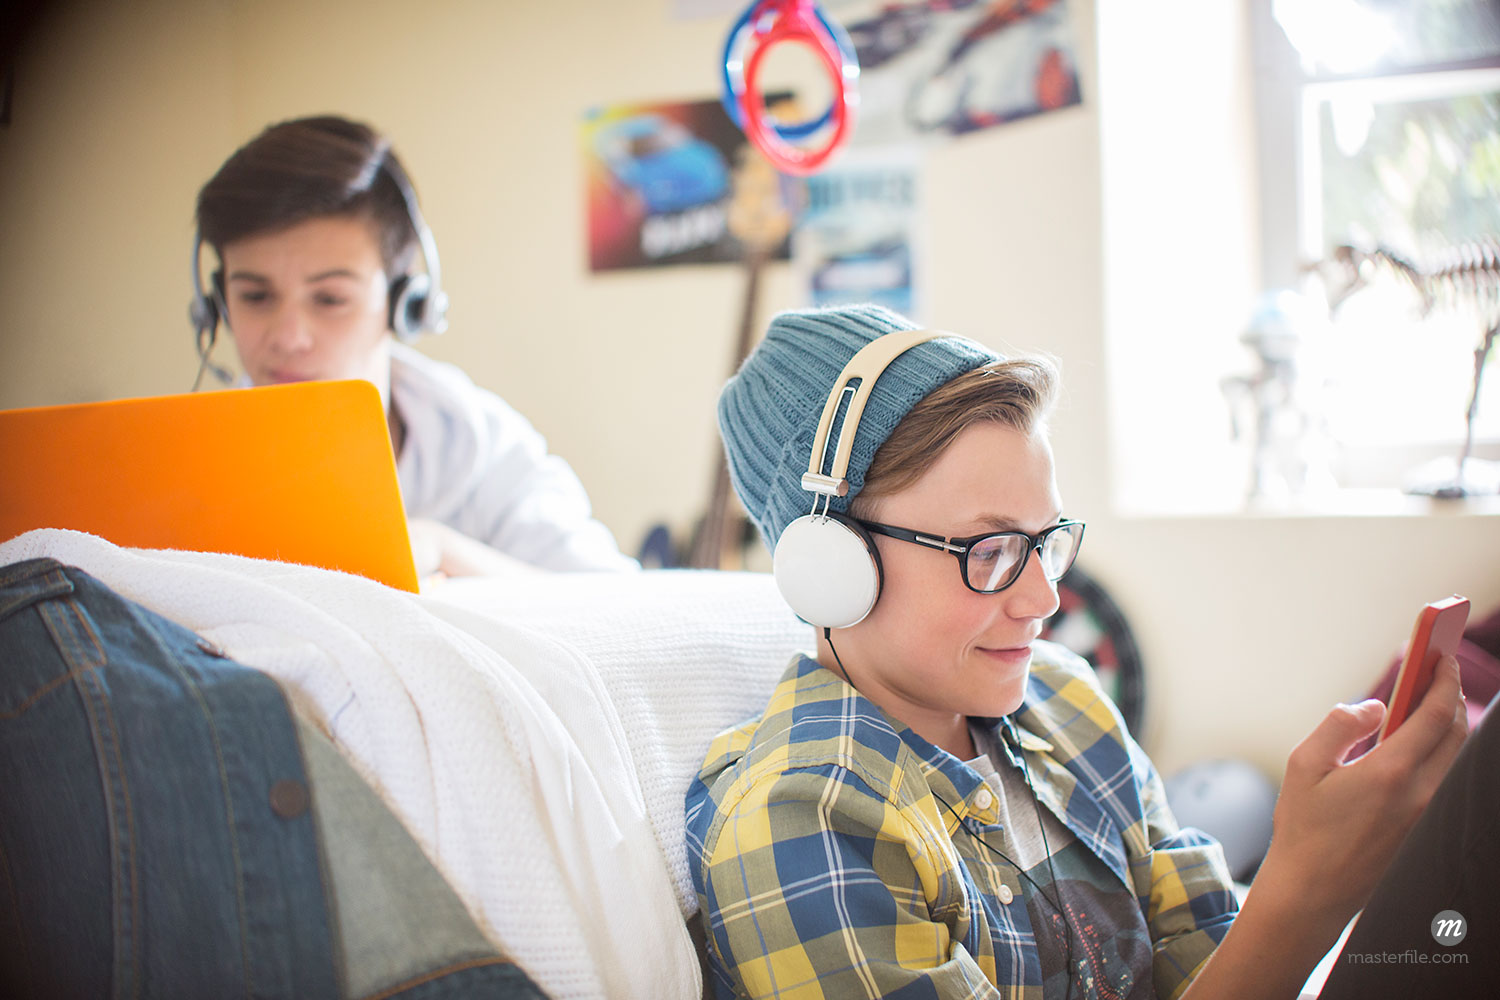 Two teenage boys using electronic devices in room  © Caia Image / Masterfile